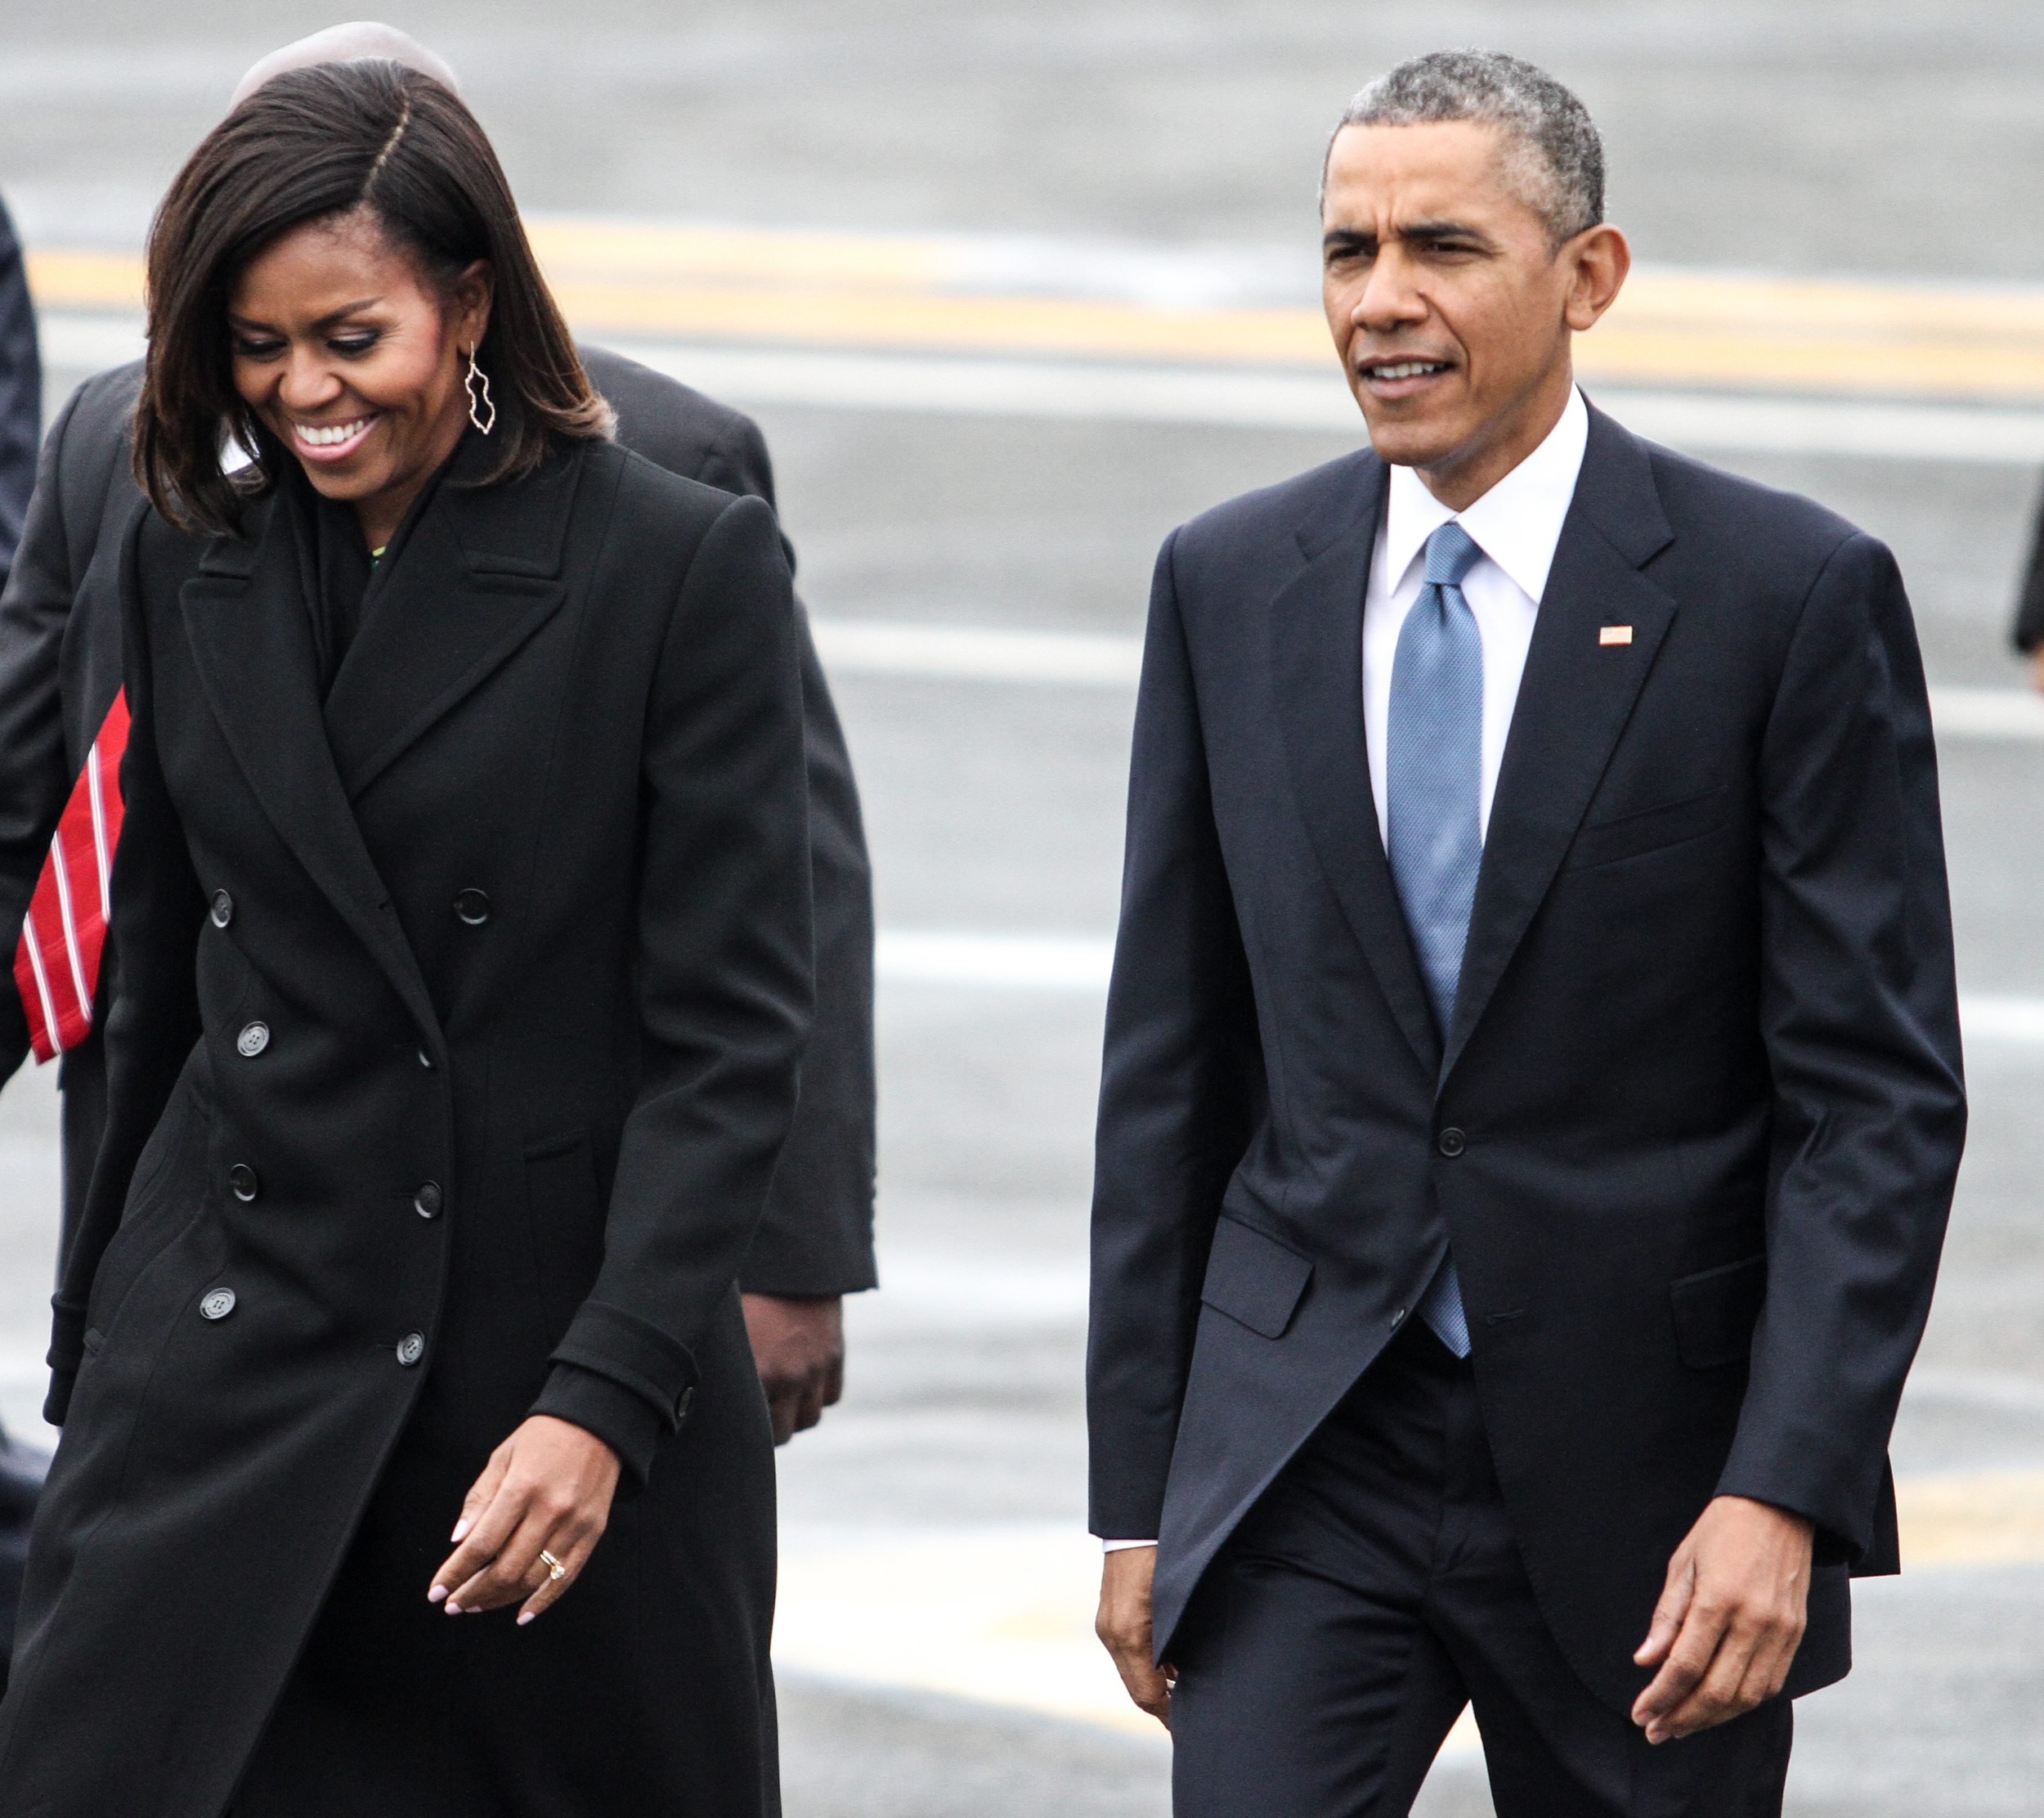 Michelle and Barack Obama arrive in Boston for the opening of theEdward M. Kennedy Institute March 30, 2015.